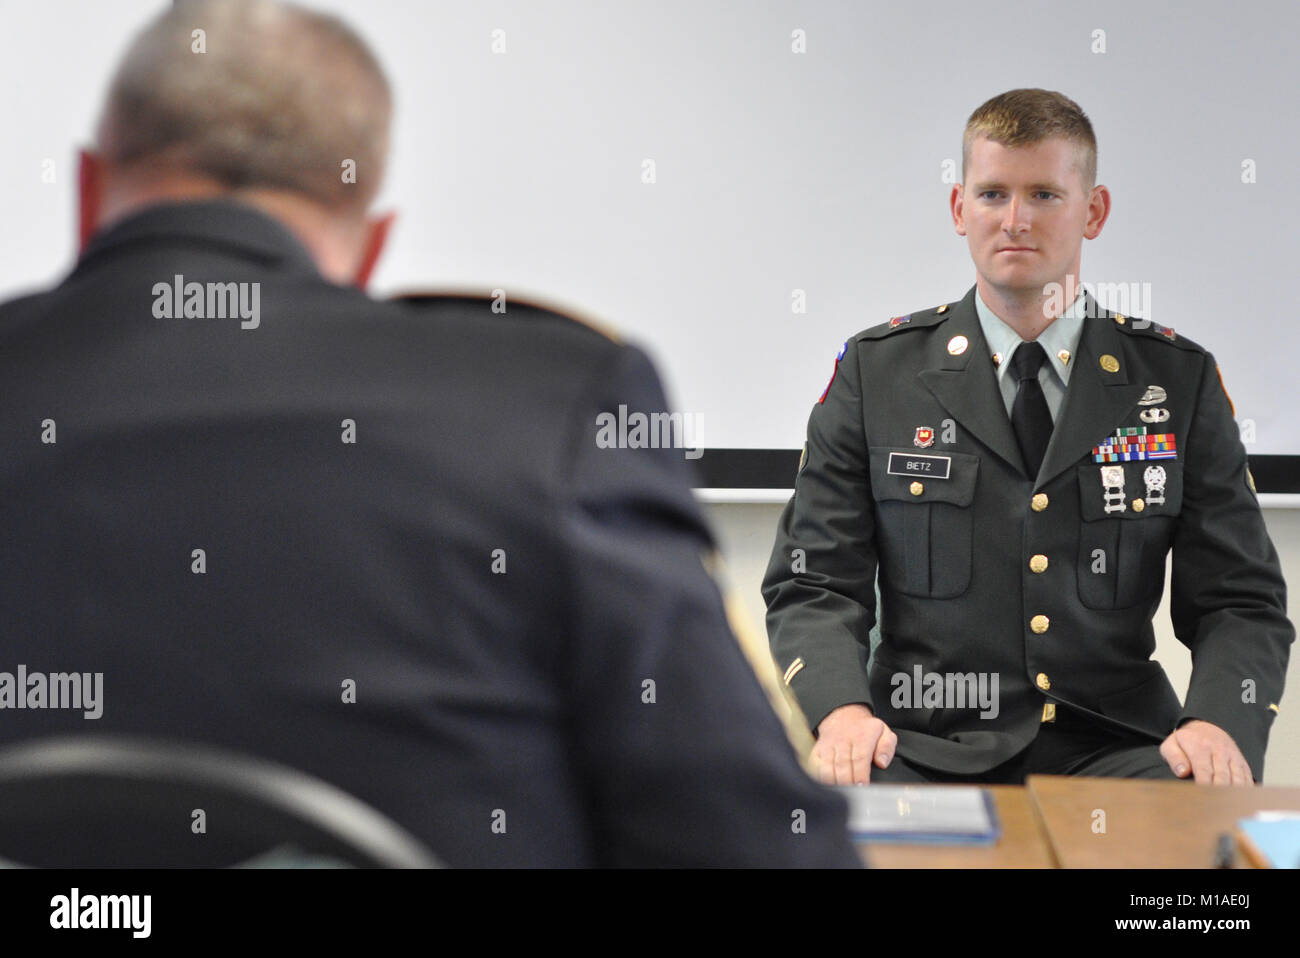 224th Brigade Engineer Battalion High Resolution Stock Photography And Images Alamy